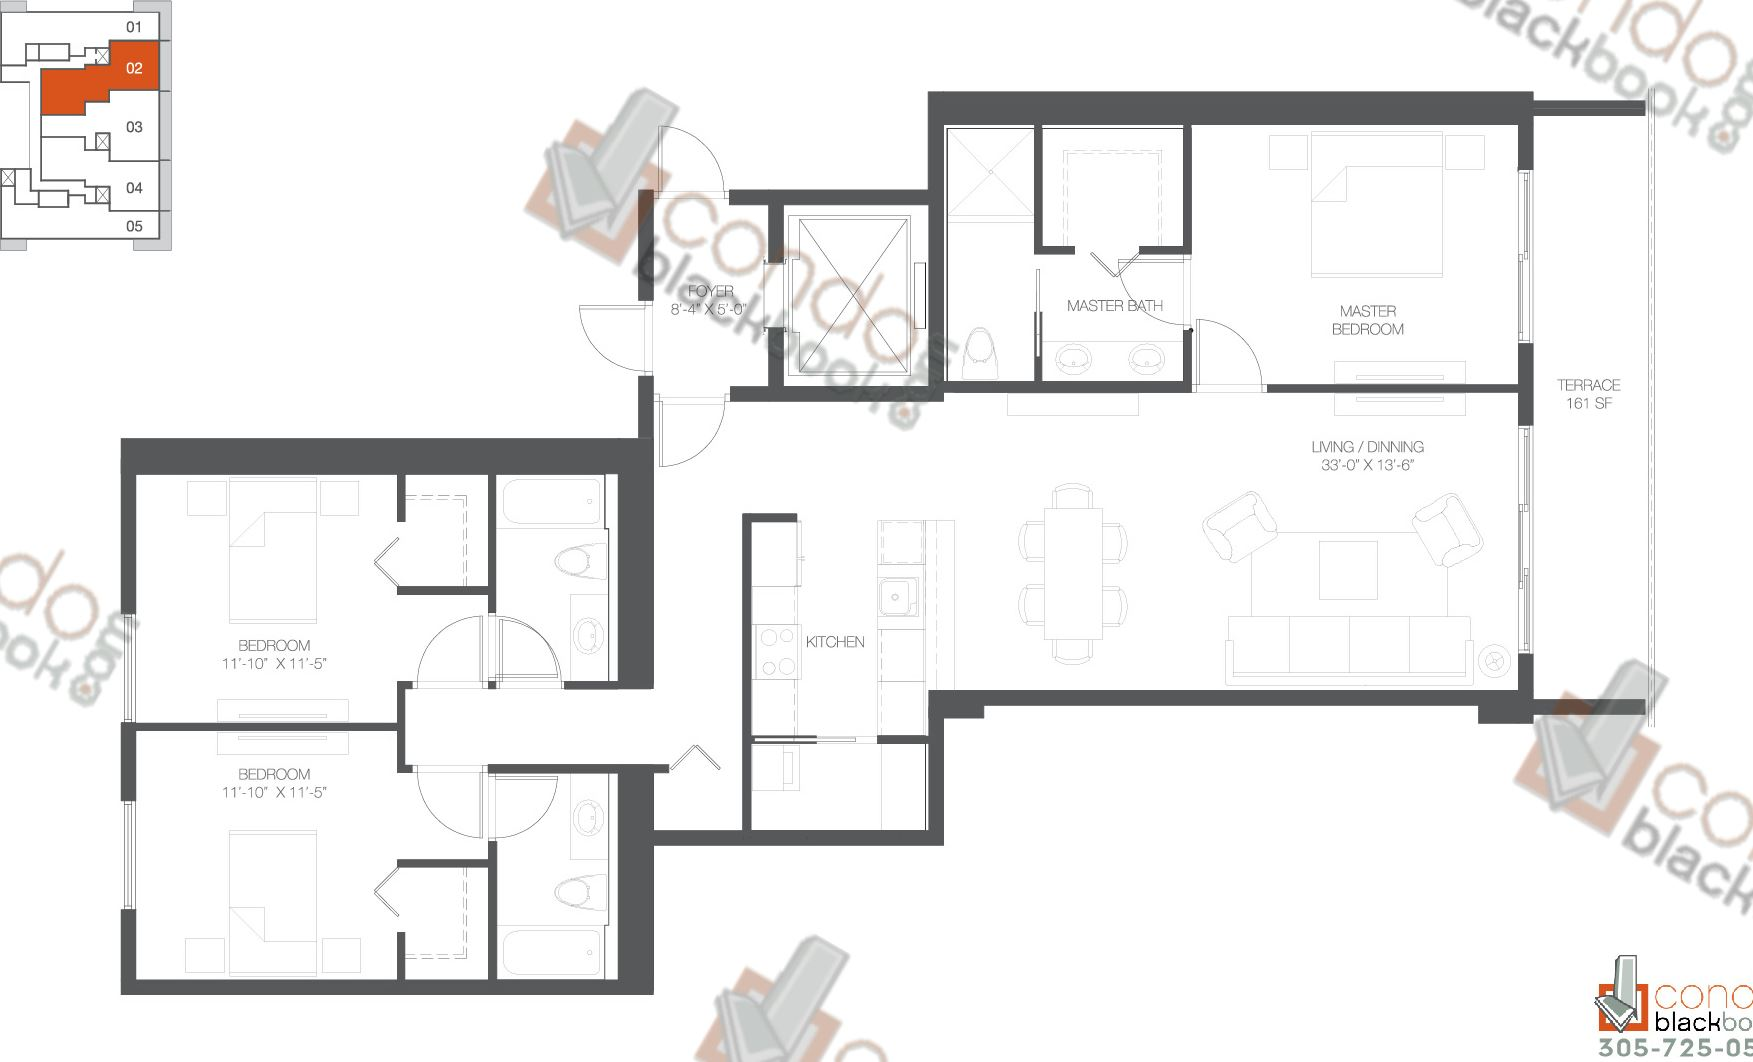 Floor plan for Bay House Edgewater Miami, model Residence 02, line 02, 3/3 bedrooms, 1,762 sq ft